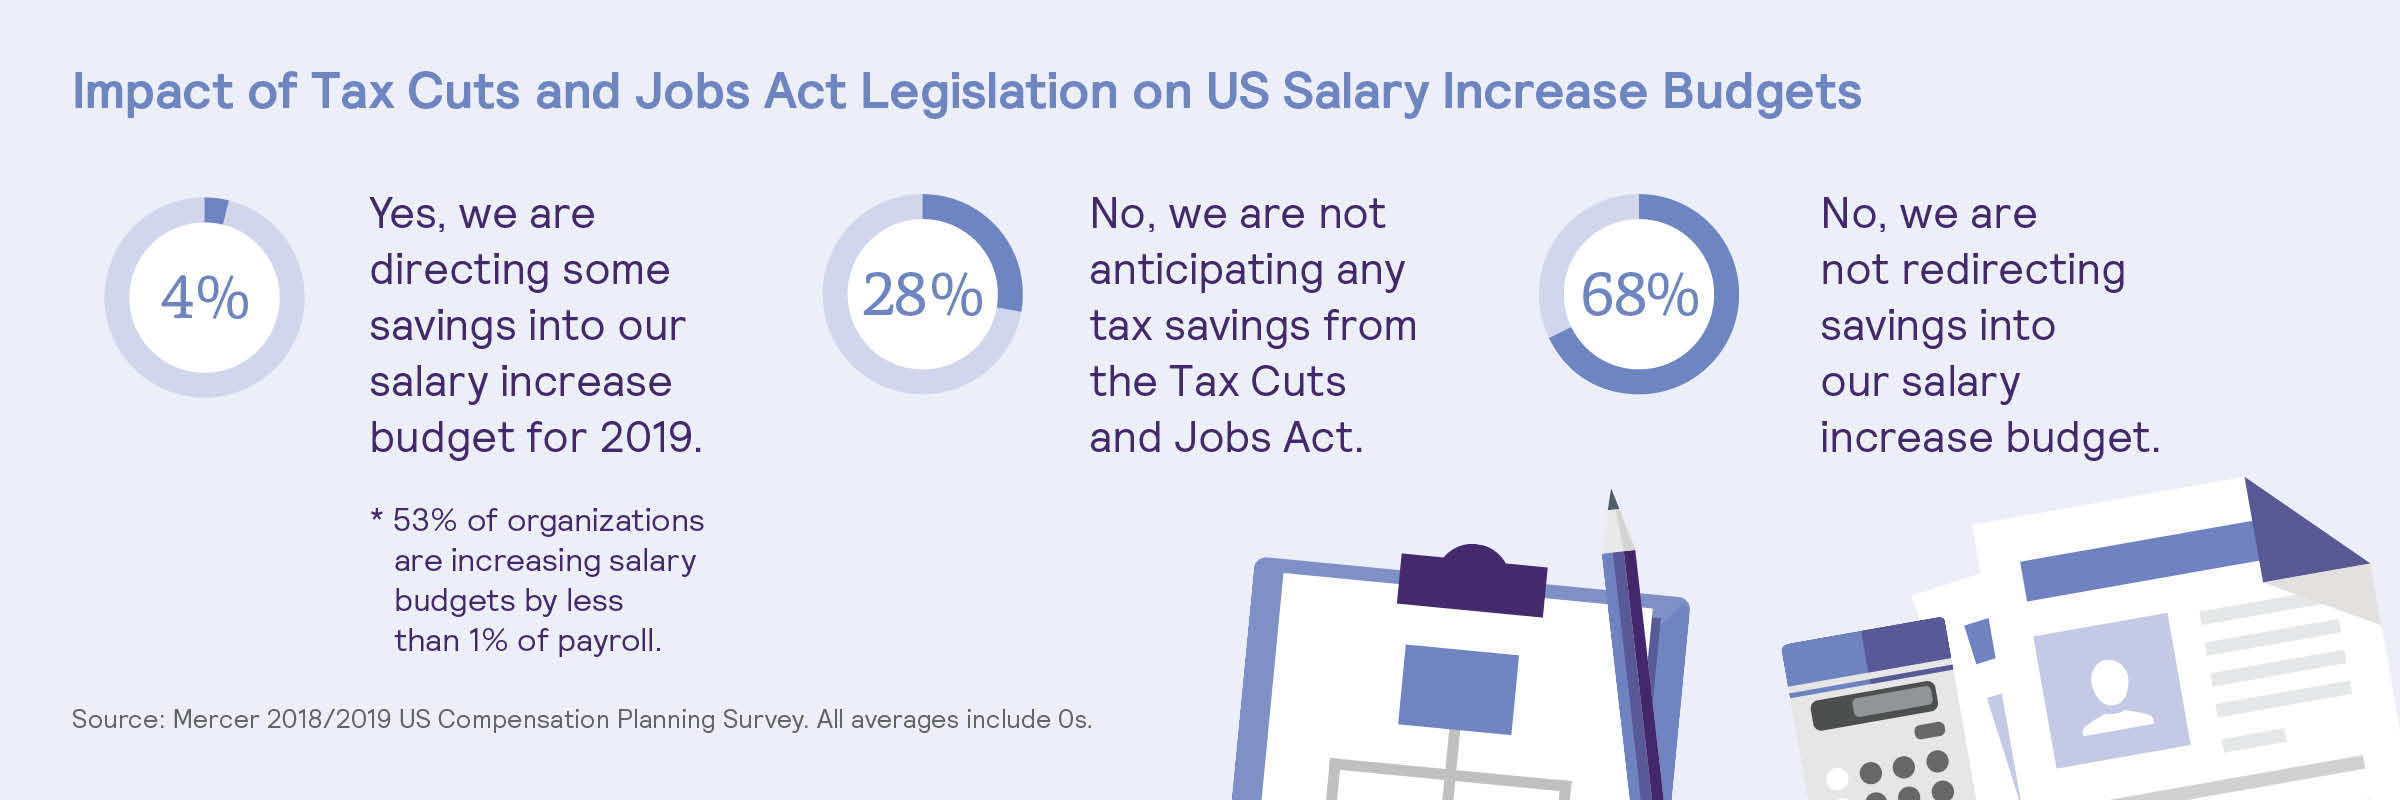 Impact of Tax Cuts and Jobs Act Legislation on US Salary Increase Budgets